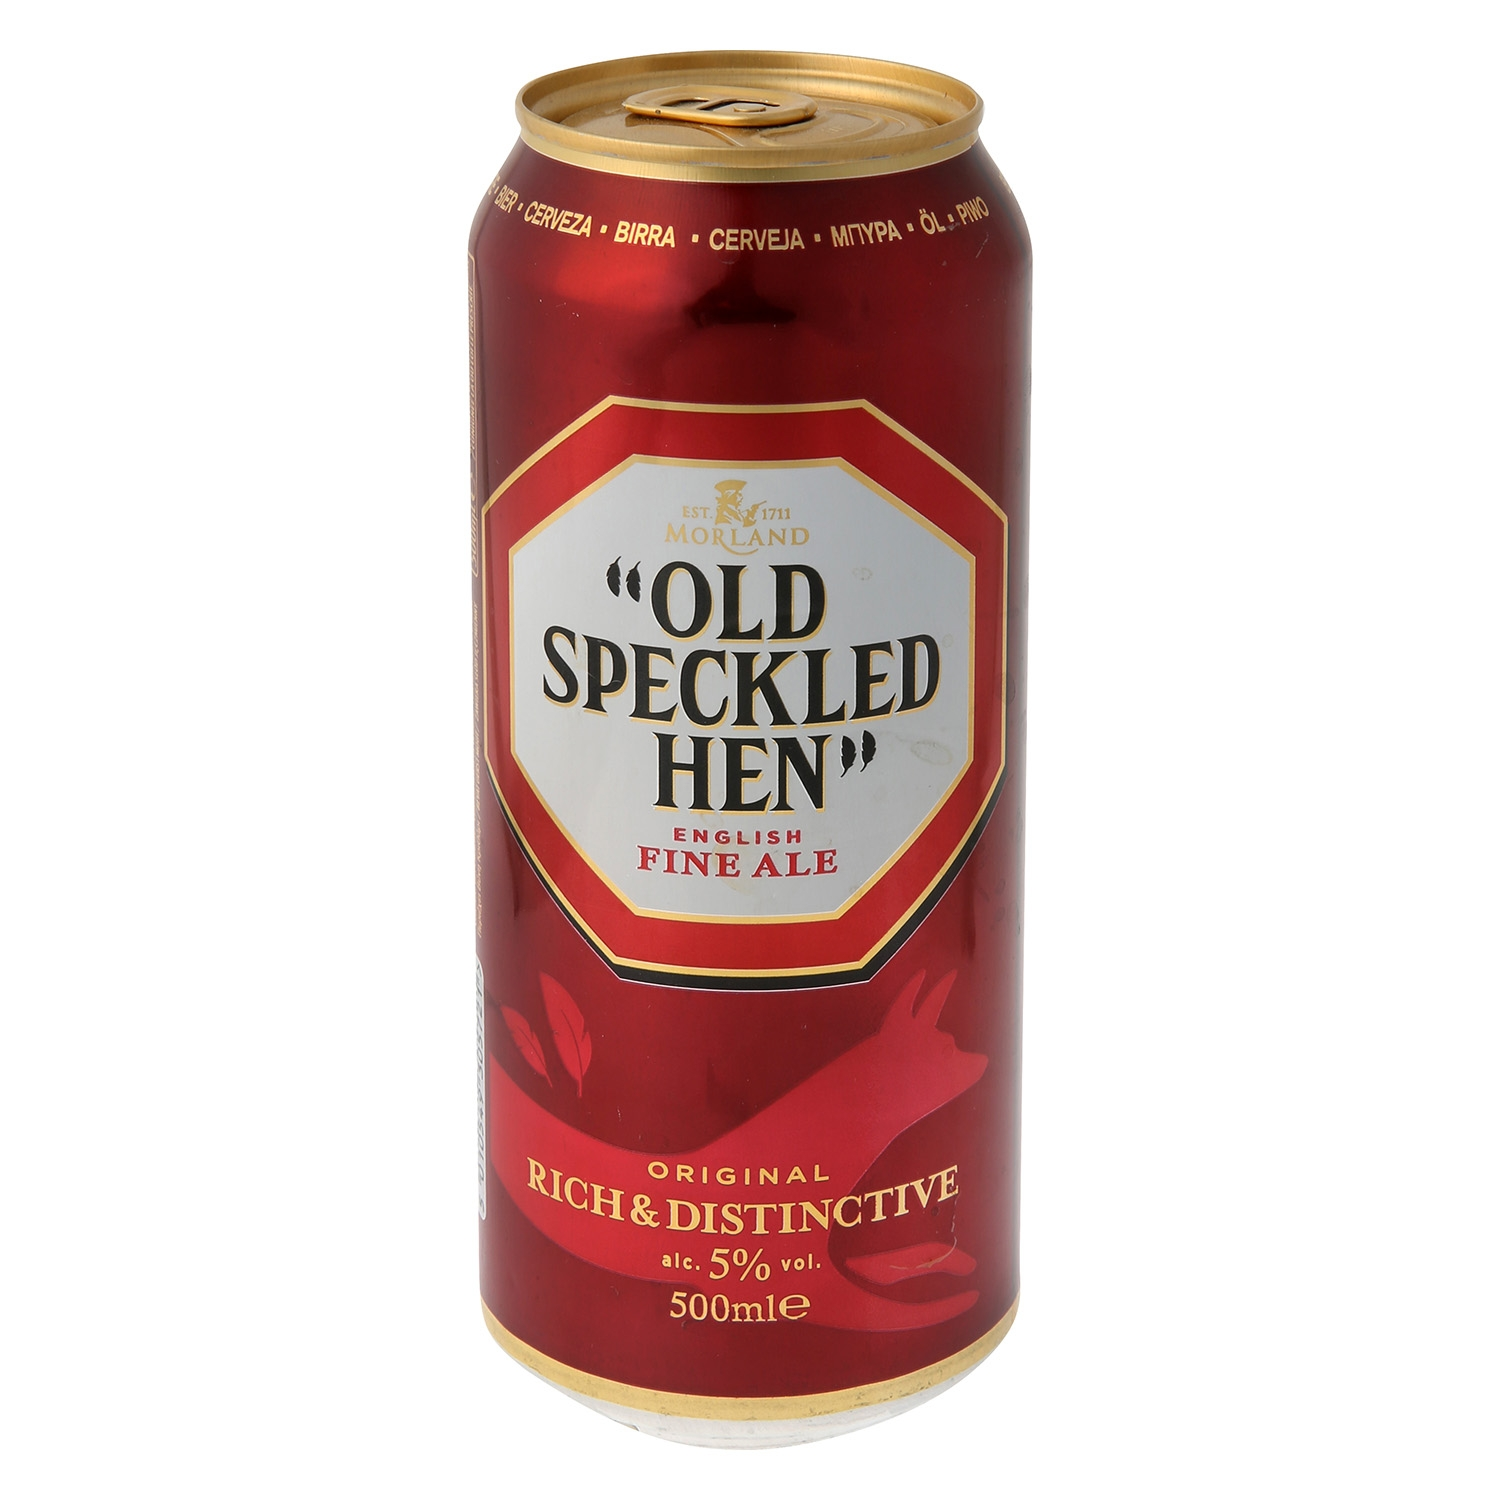 Cerveza Morland Old Speckled Hen English Fine Ale lata 50 cl.